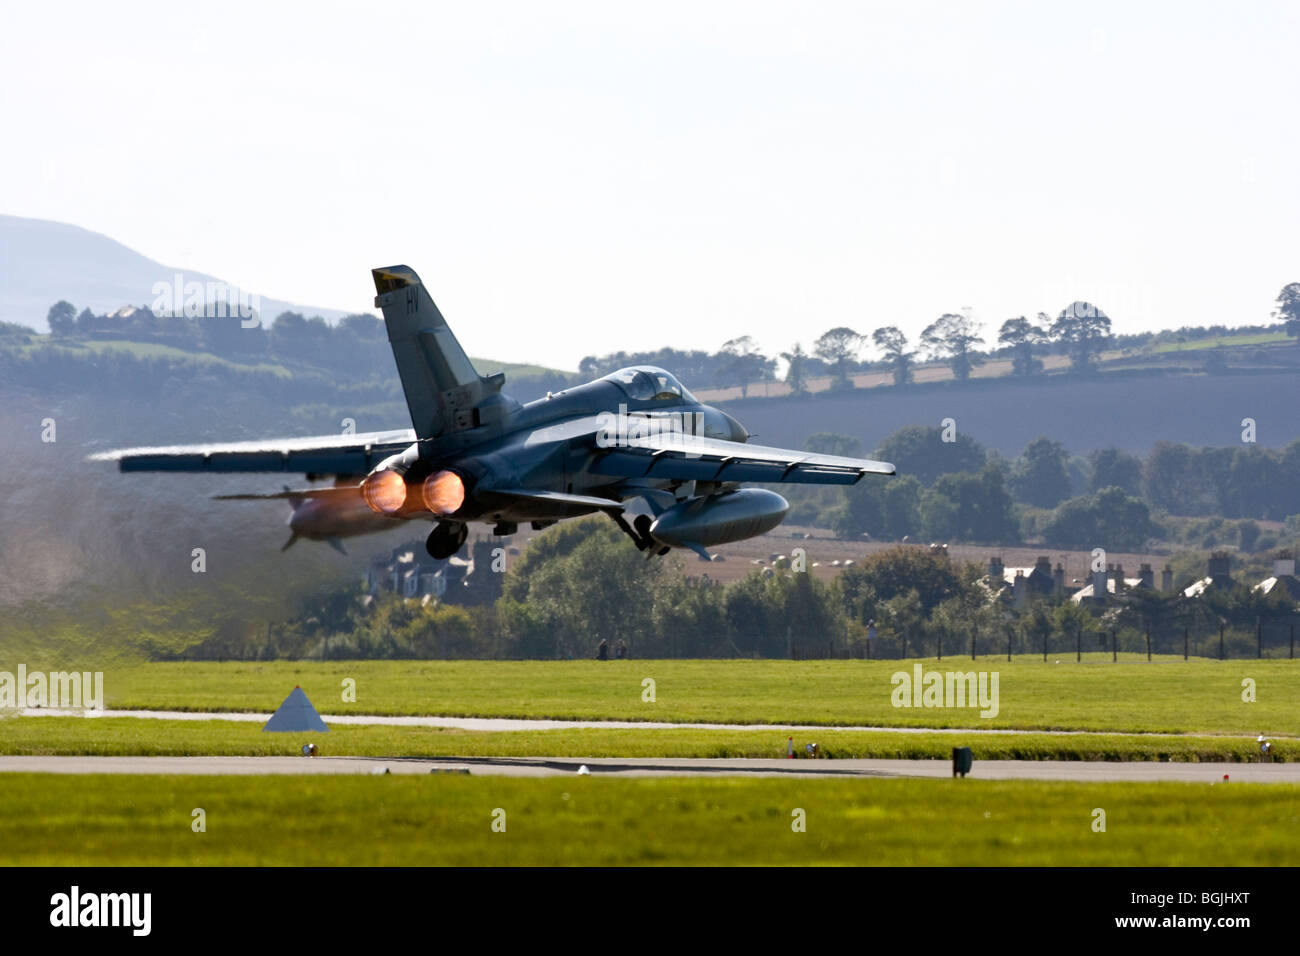 RAF Tornado F3 - 111(F) Sqn taking off with full afterburners at RAF Leuchars Airshow 2009, Fife, Scotland - Stock Image